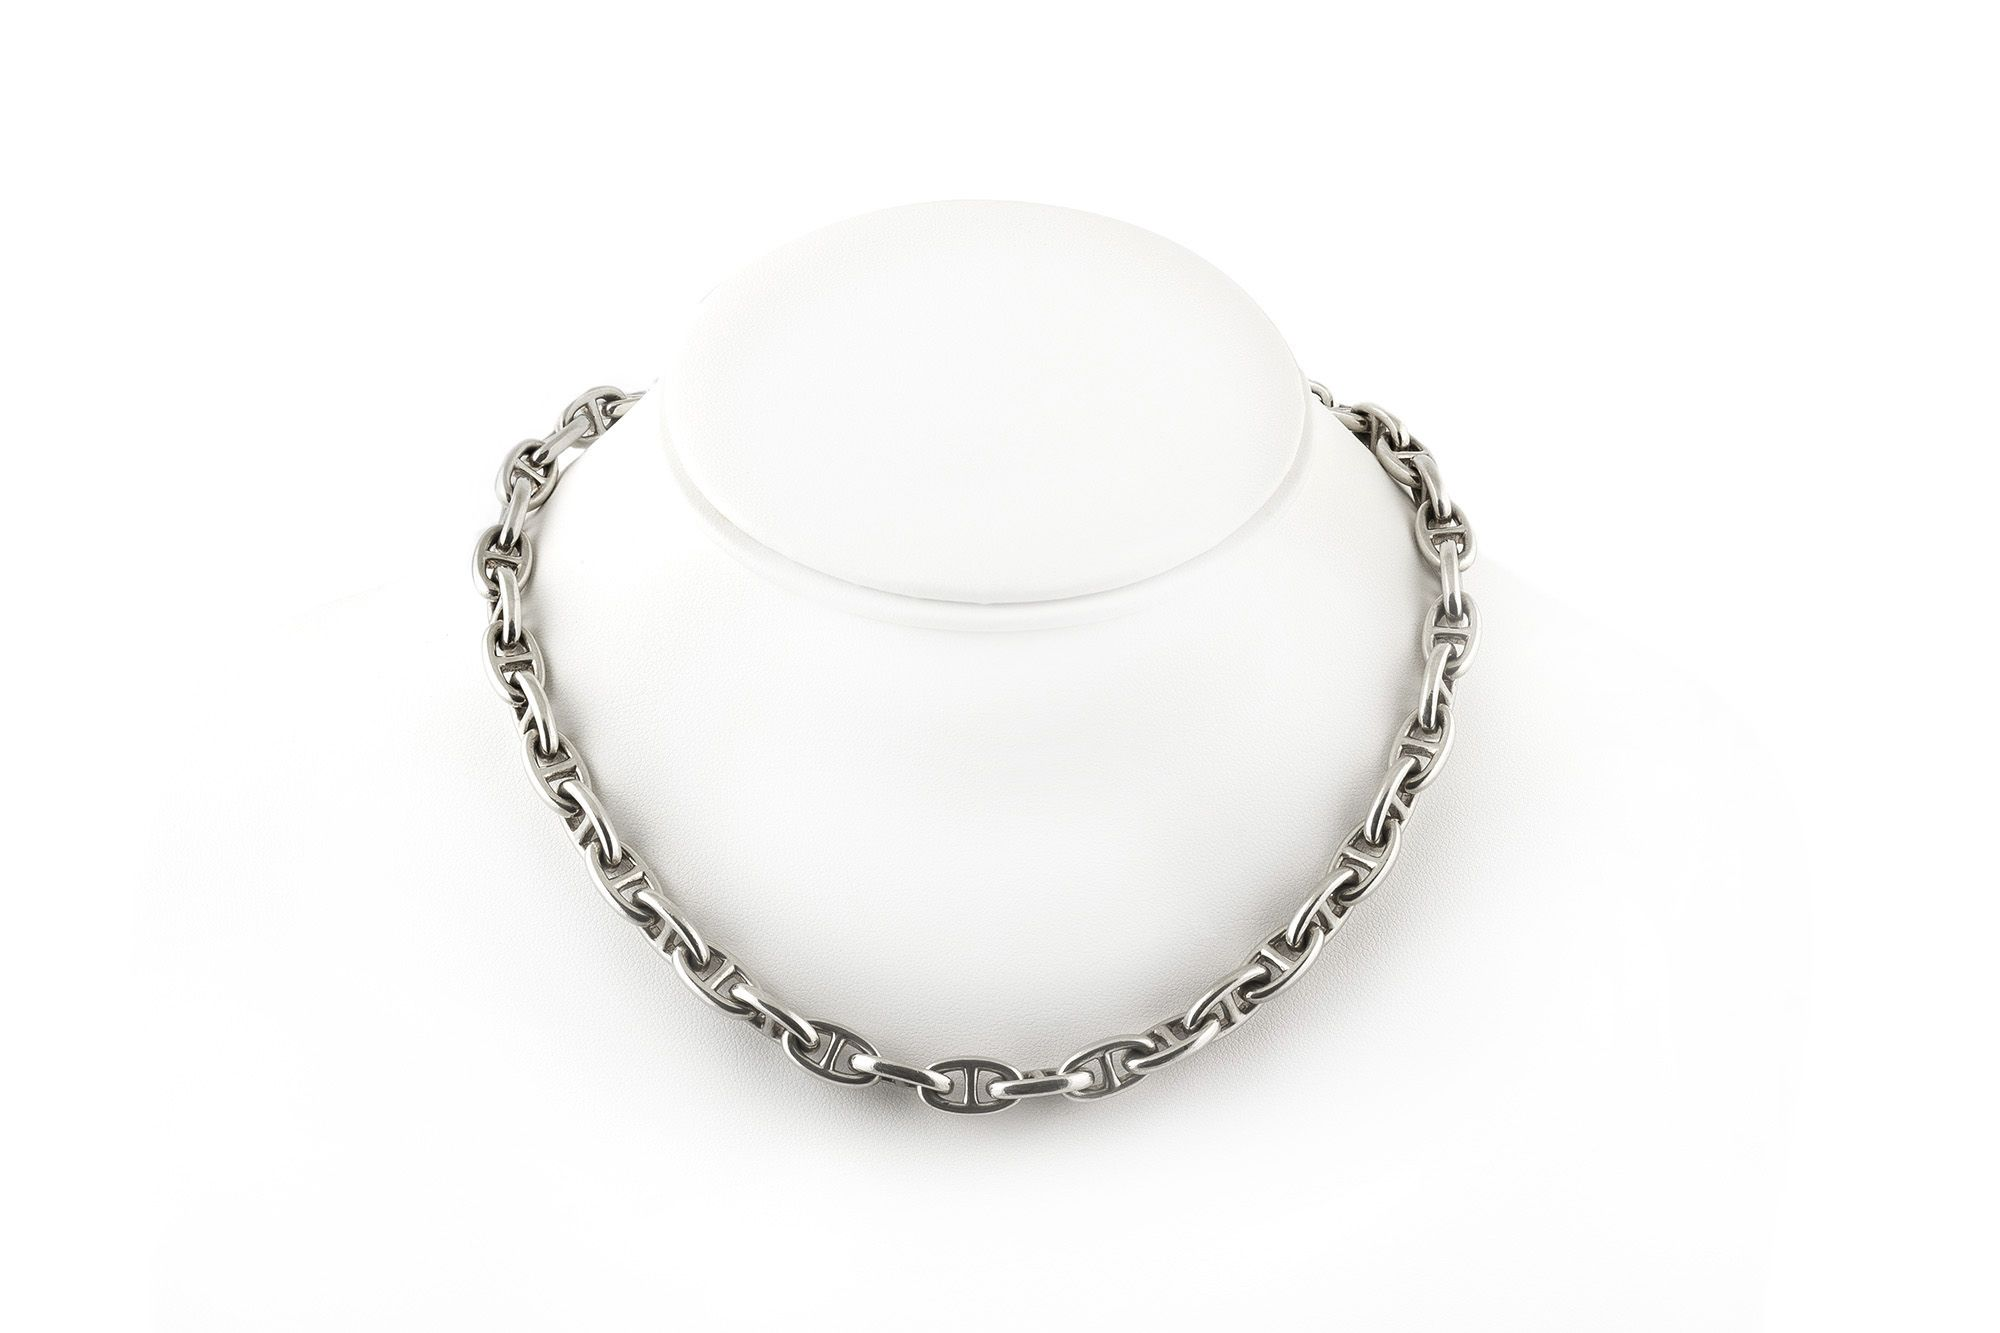 6b423fc841 Hermes Sterling Silver Chaine d'Ancre Necklace | Necklaces | Hermes ...